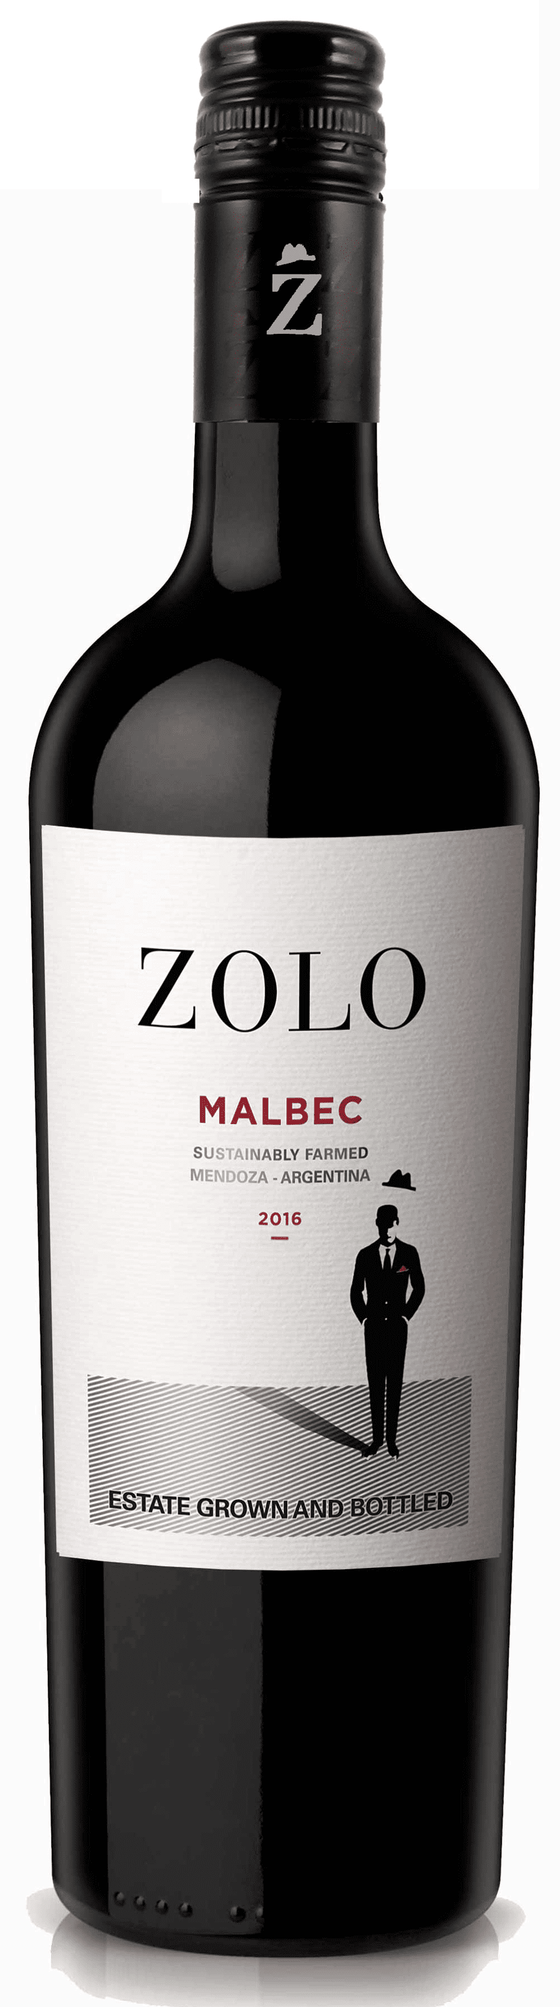 Zolo Malbec 2017 Zolo Malbec (#47 Wine Enthusiast Best Buys 2018)